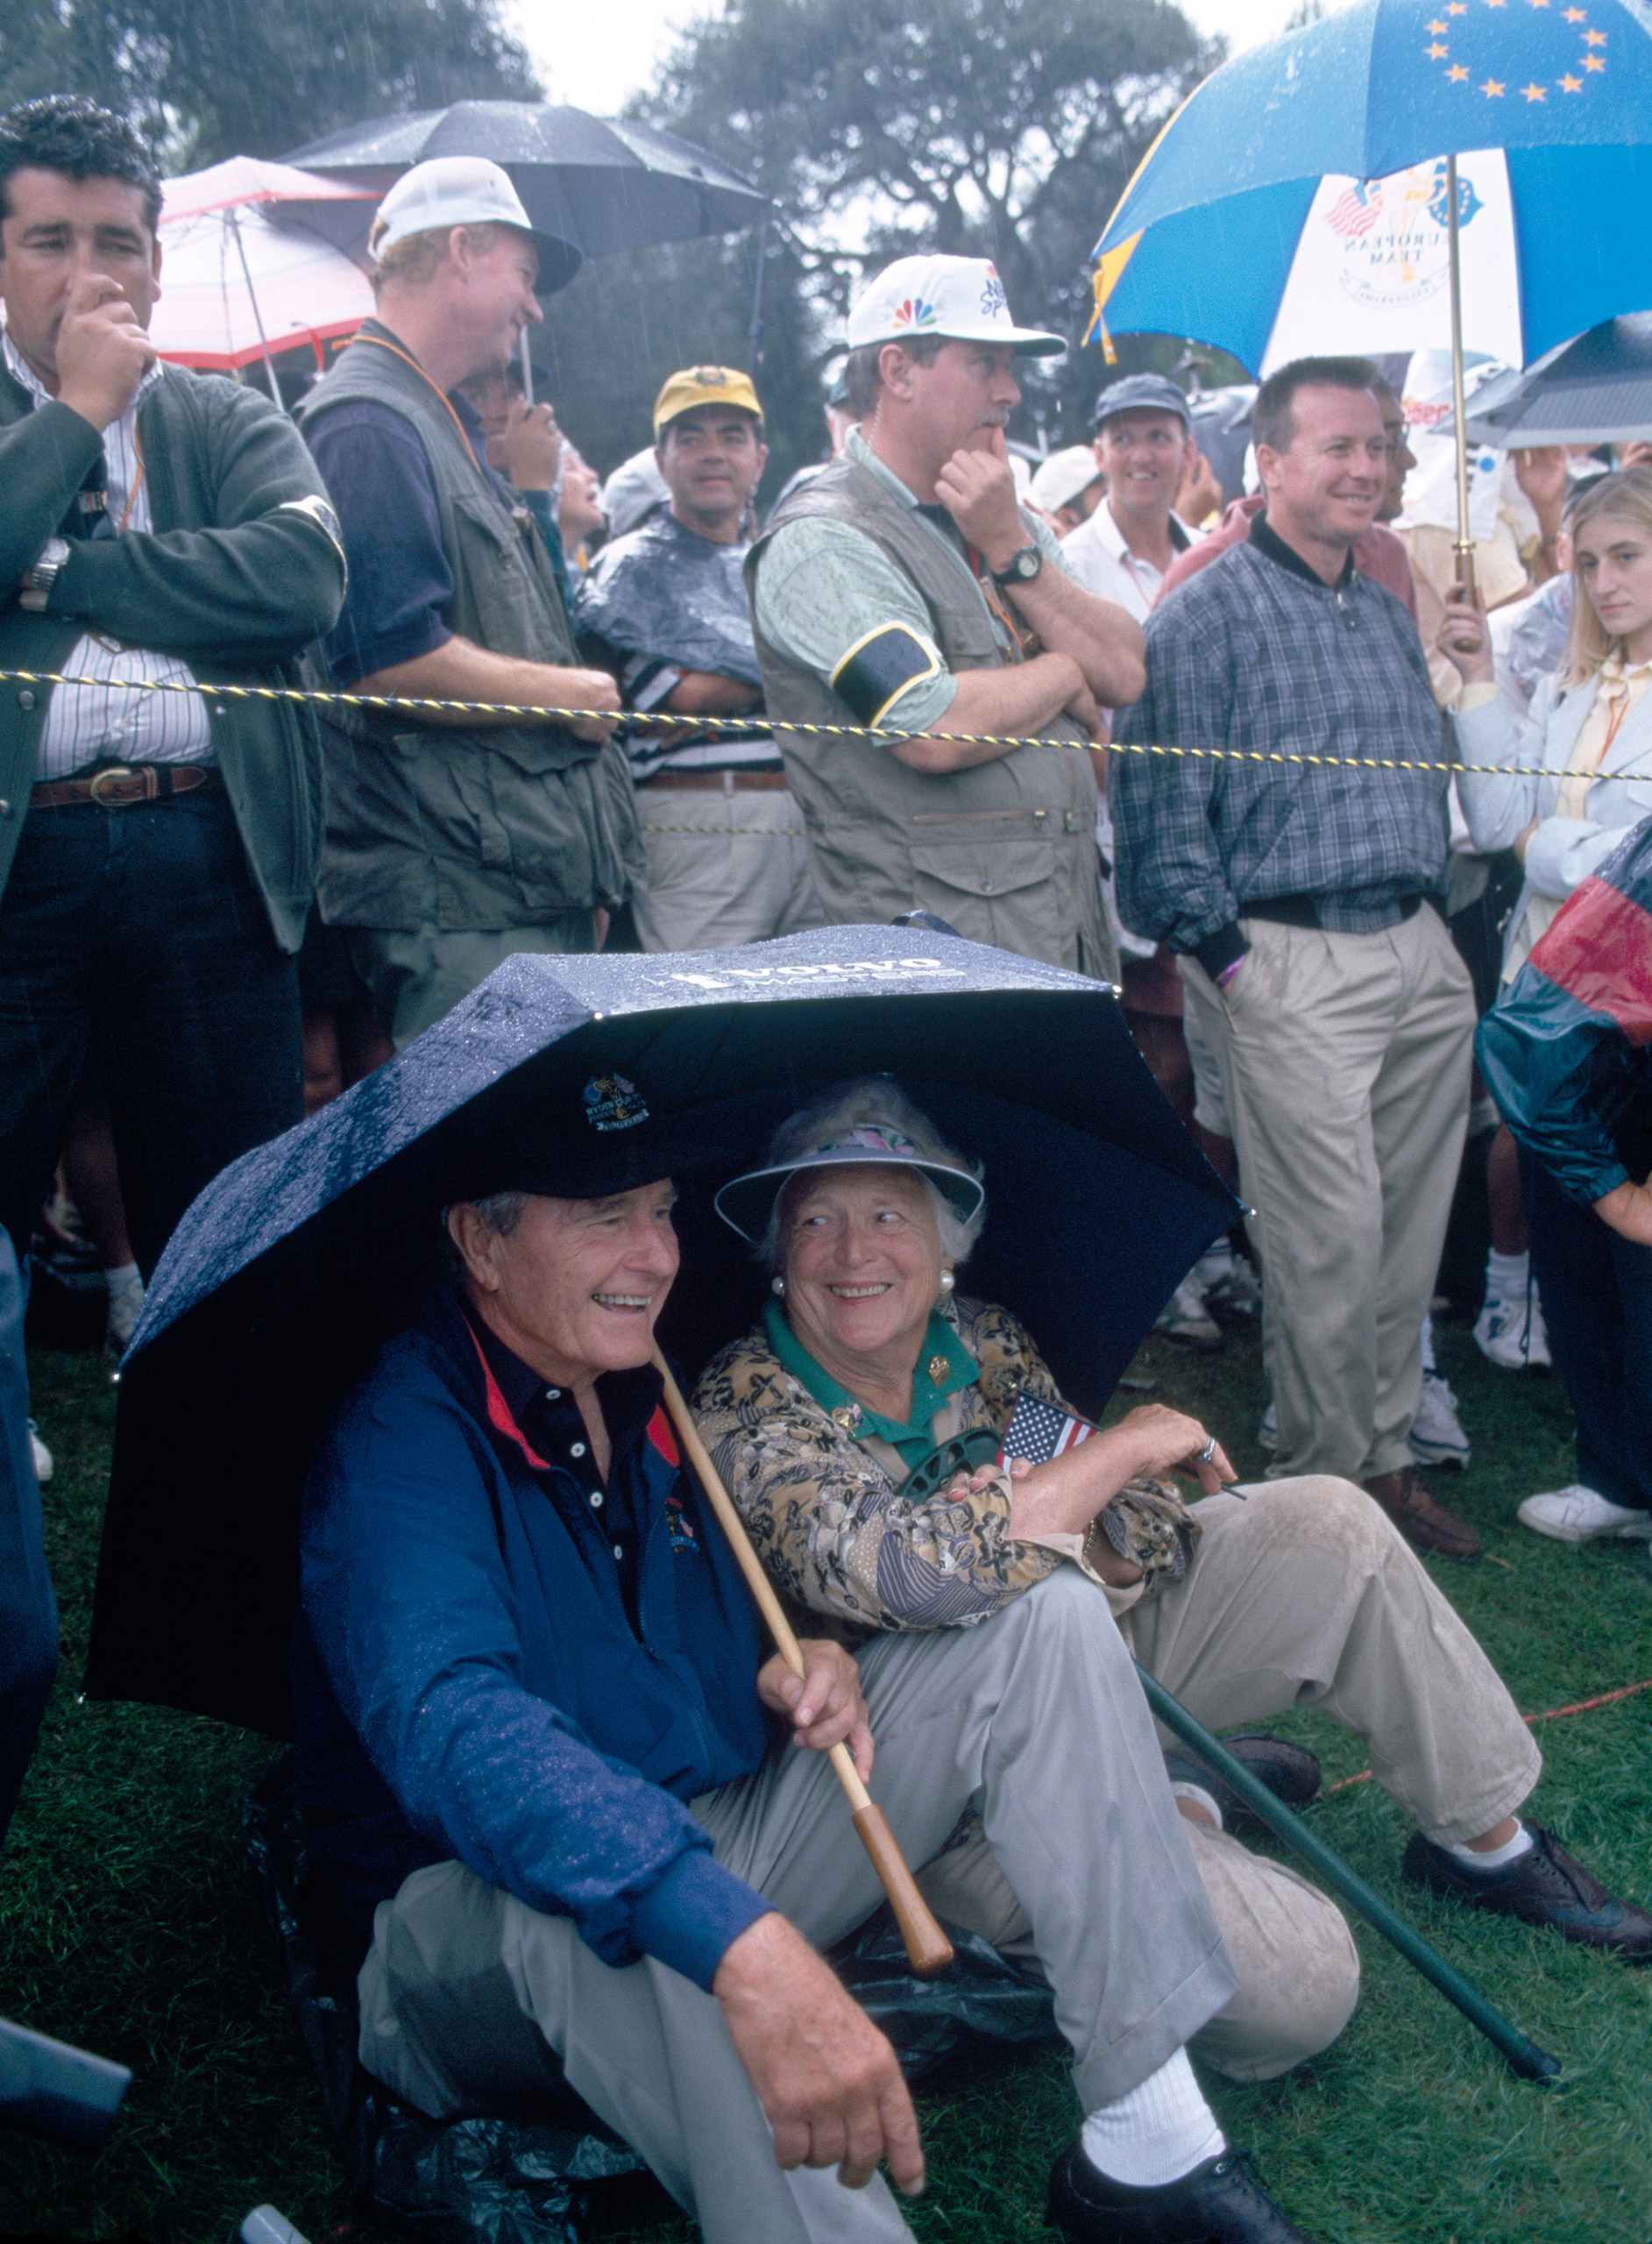 Former President George H.W. Bush and his wife Barbara shelter from the rain during the Ryder Cup golf competition at the Valderrama Golf Club in Sotogrande, Spain, on Sep. 26, 1997.